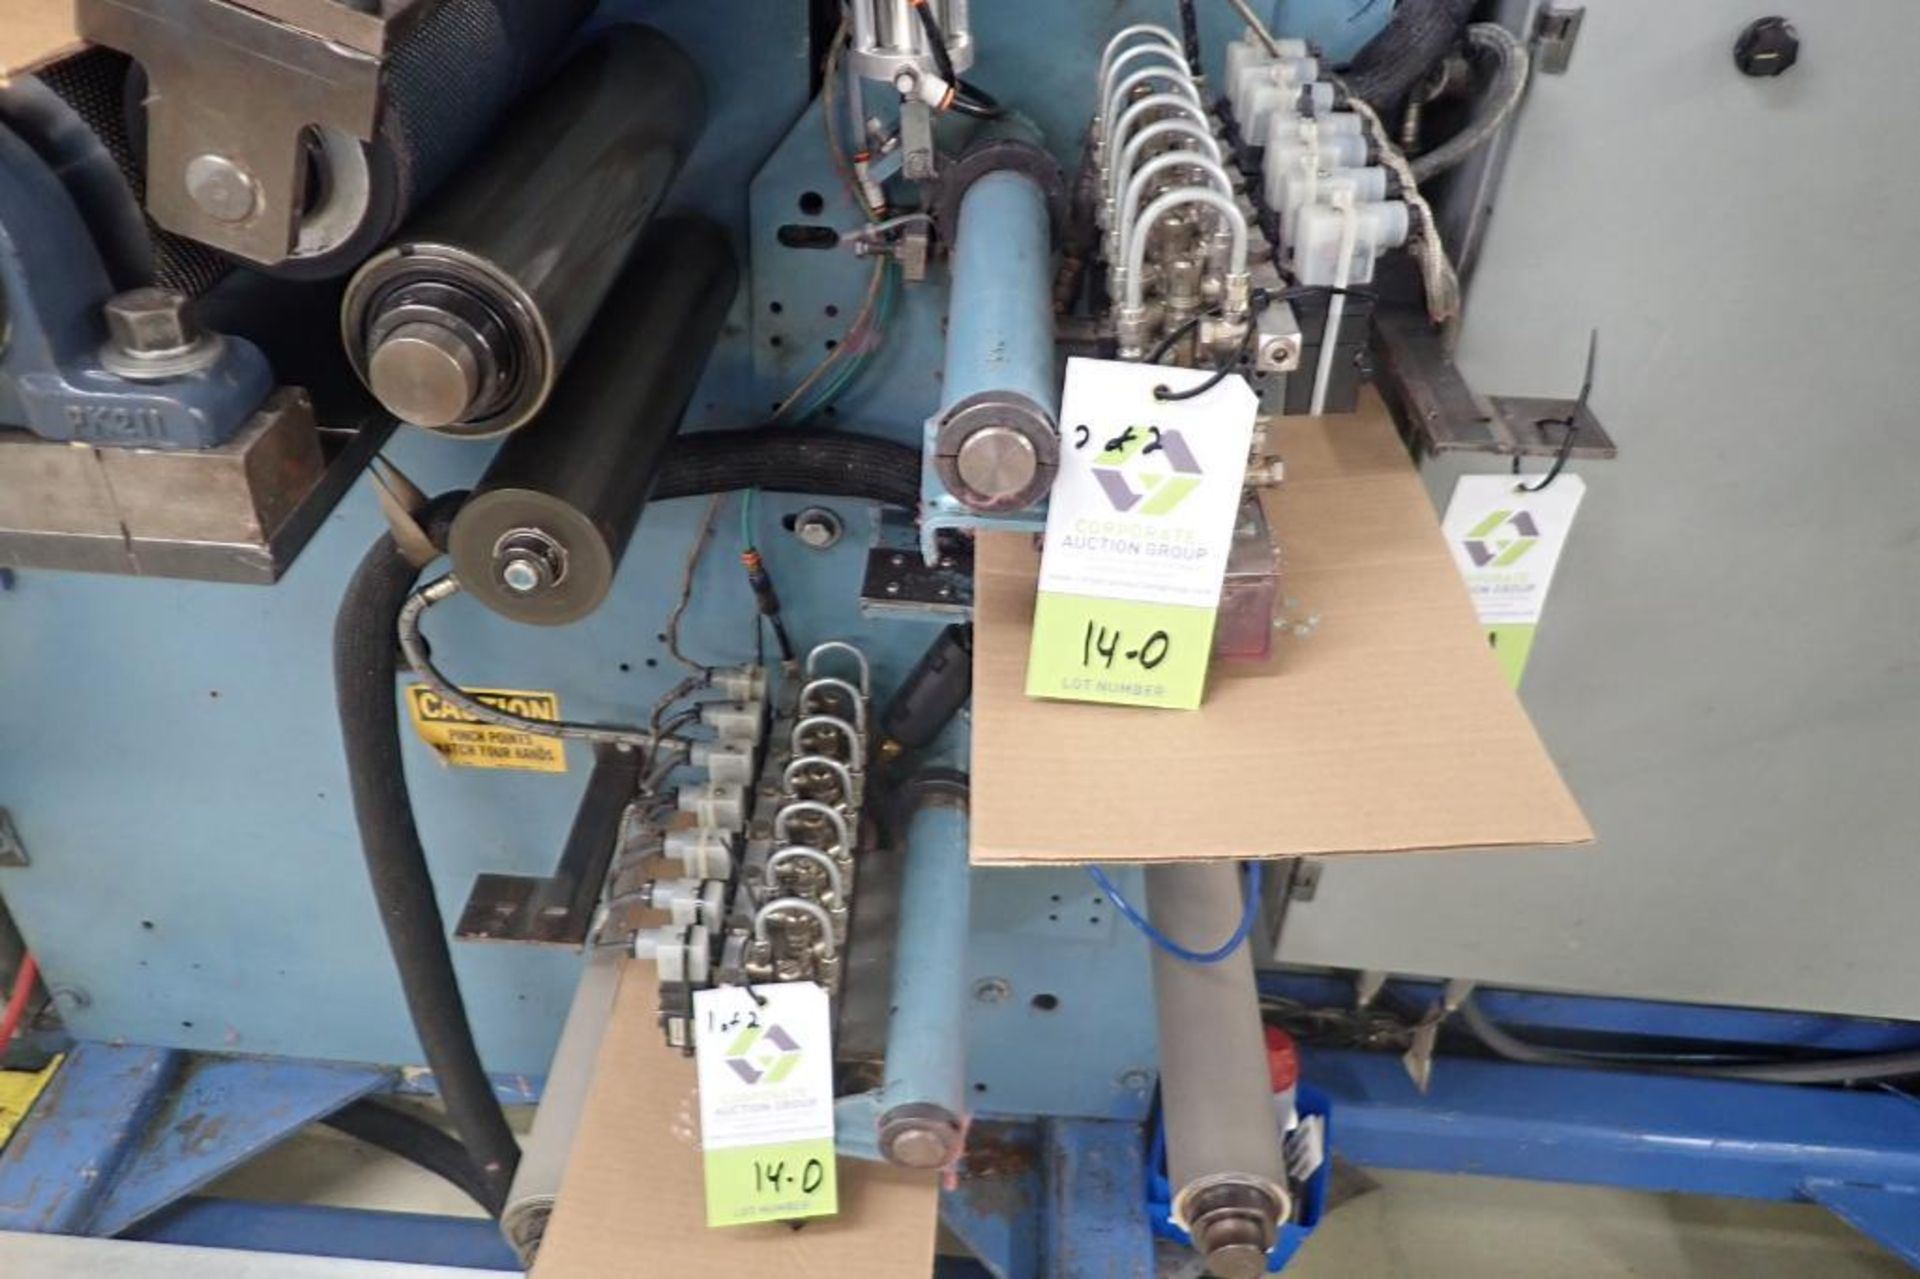 Lot 14D - Slot coater hot glue applicator for bonding/coating machine ** THE INDIVIDUAL BID WILL BE OFFERED